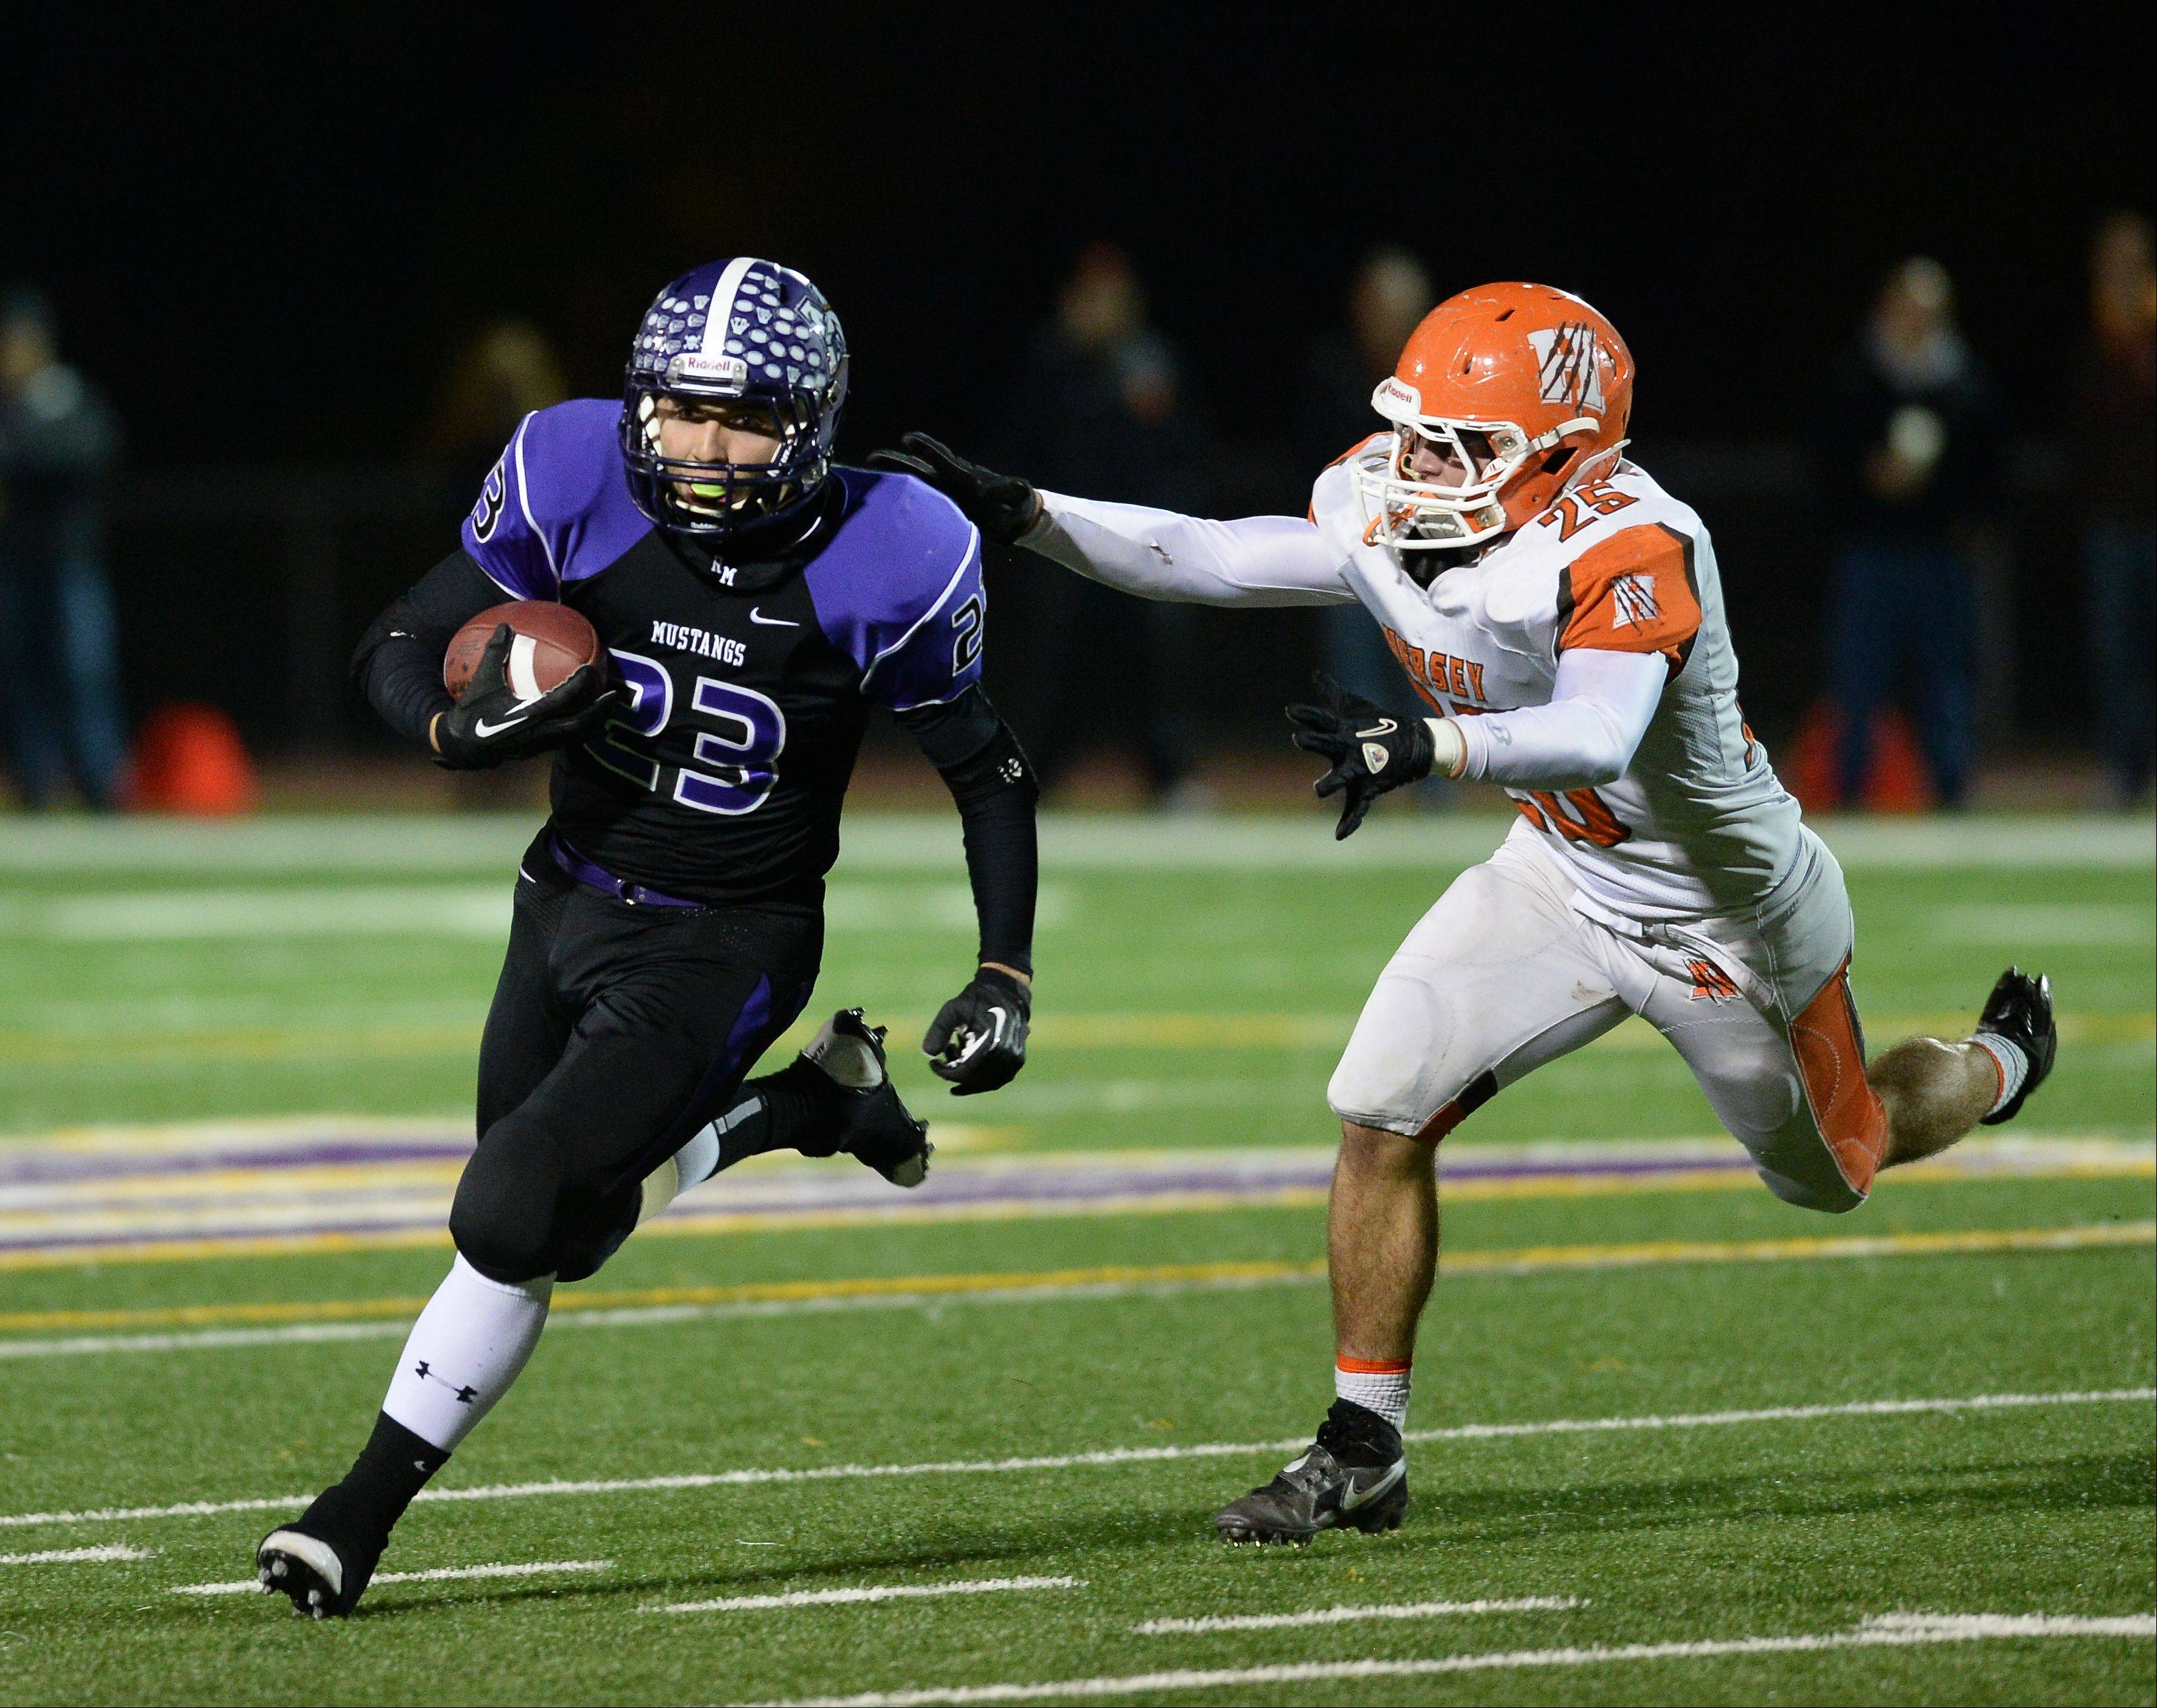 Week -8- Photos from the Rolling Meadows vs. Hersey football game on Friday, October 18 in Rolling Meadows.